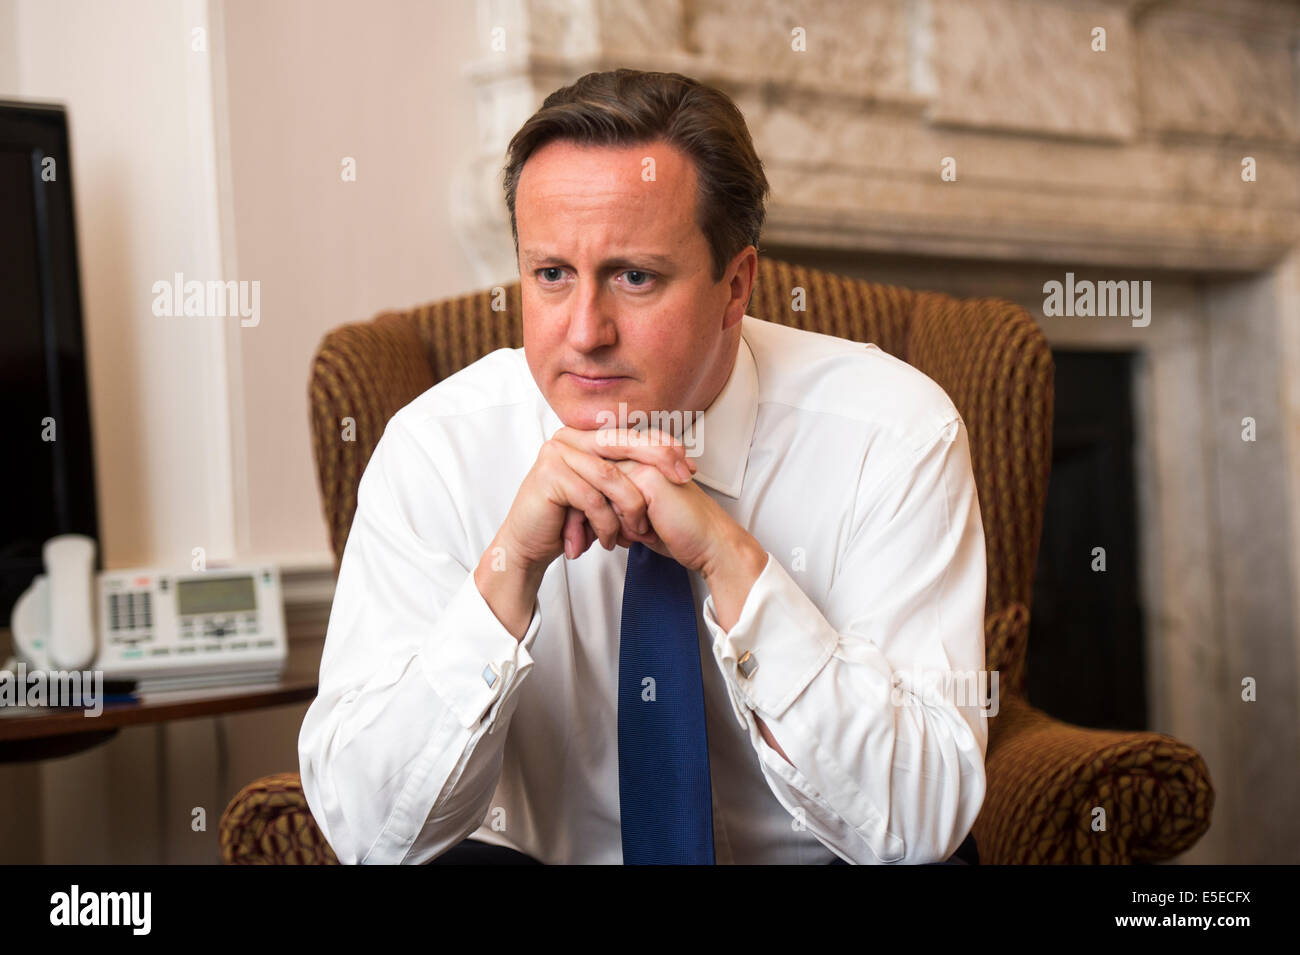 .David Cameron British Prime Minister in No 10 Downing Street - Stock Image